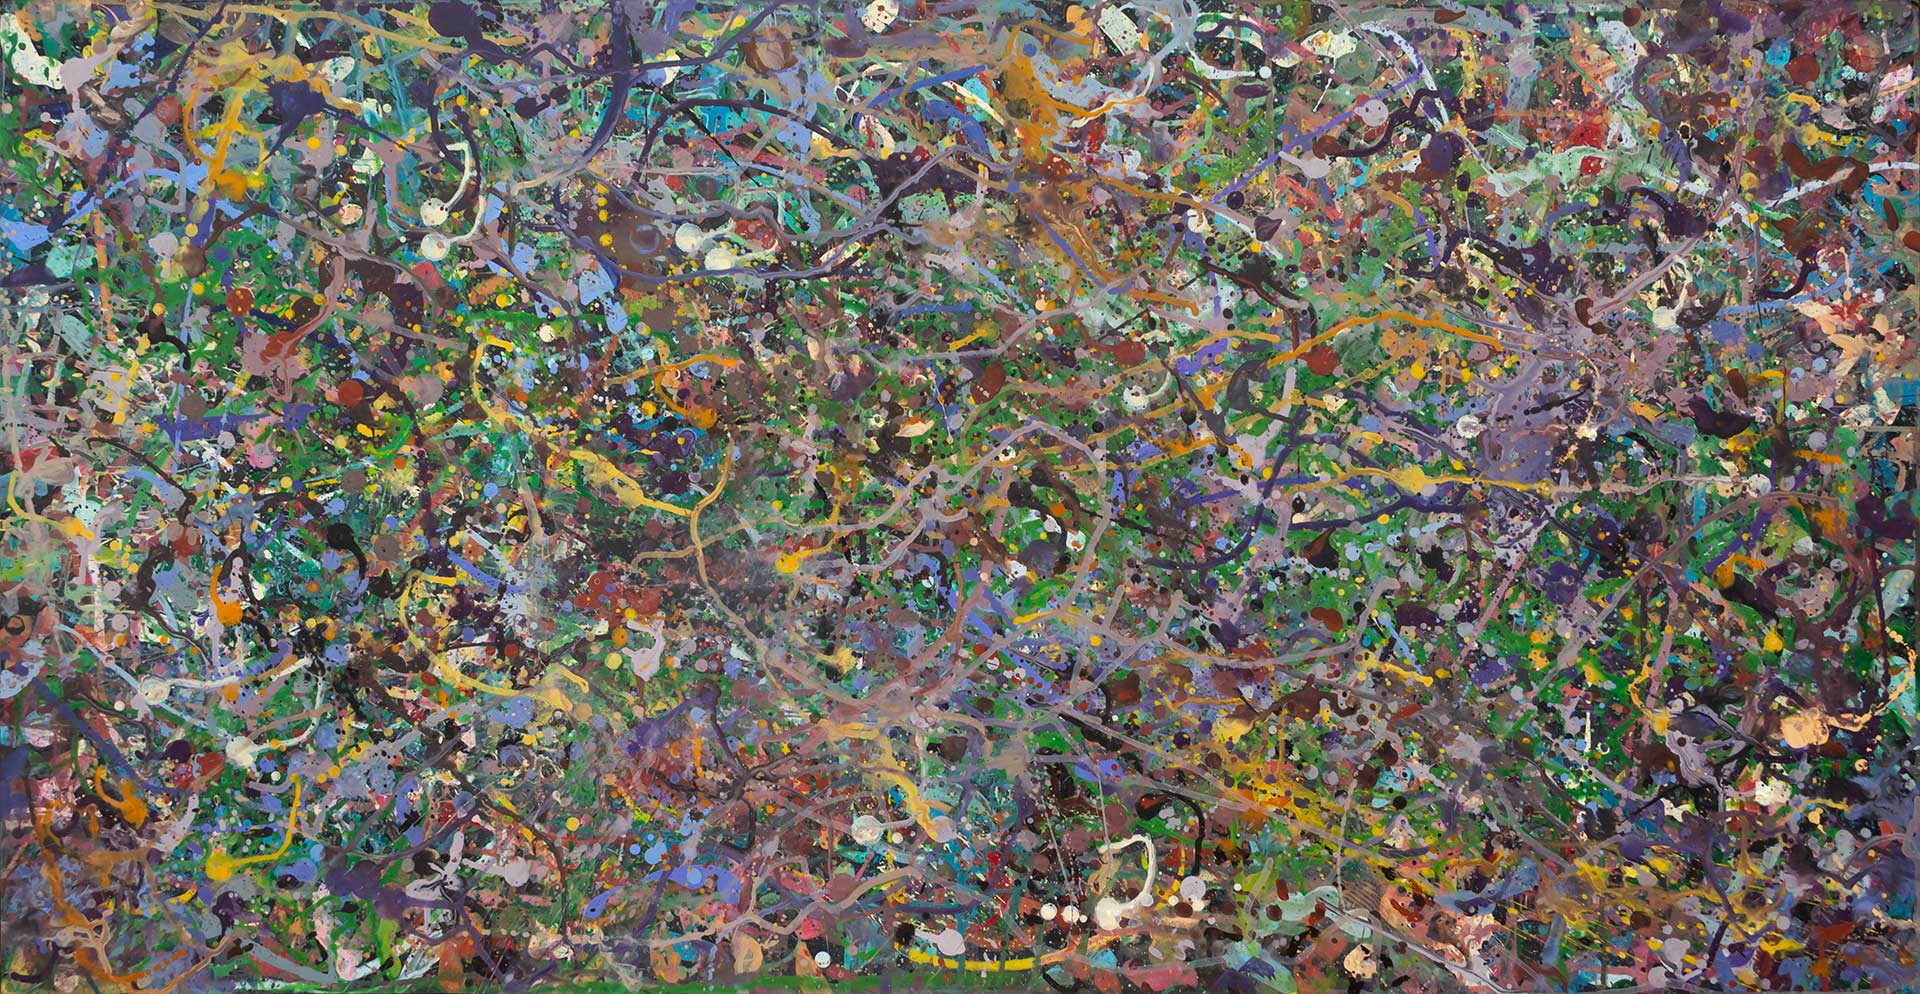 Abstract painting - Field of flowers Yarra Glen 1